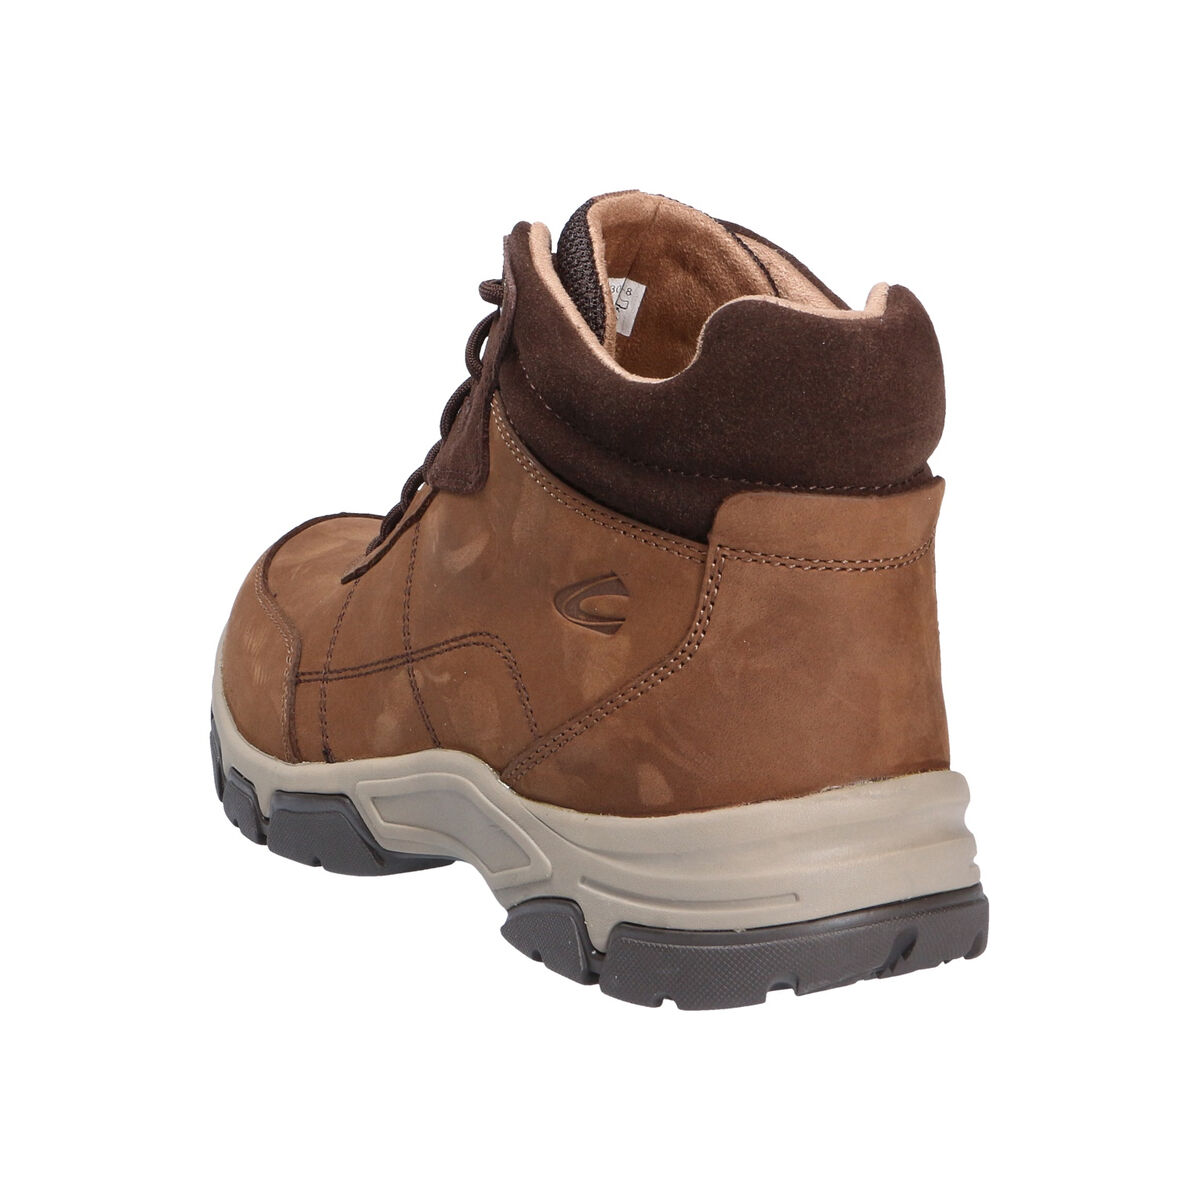 low priced 8f25d a9f0e Stiefel/Boot, EUR 43